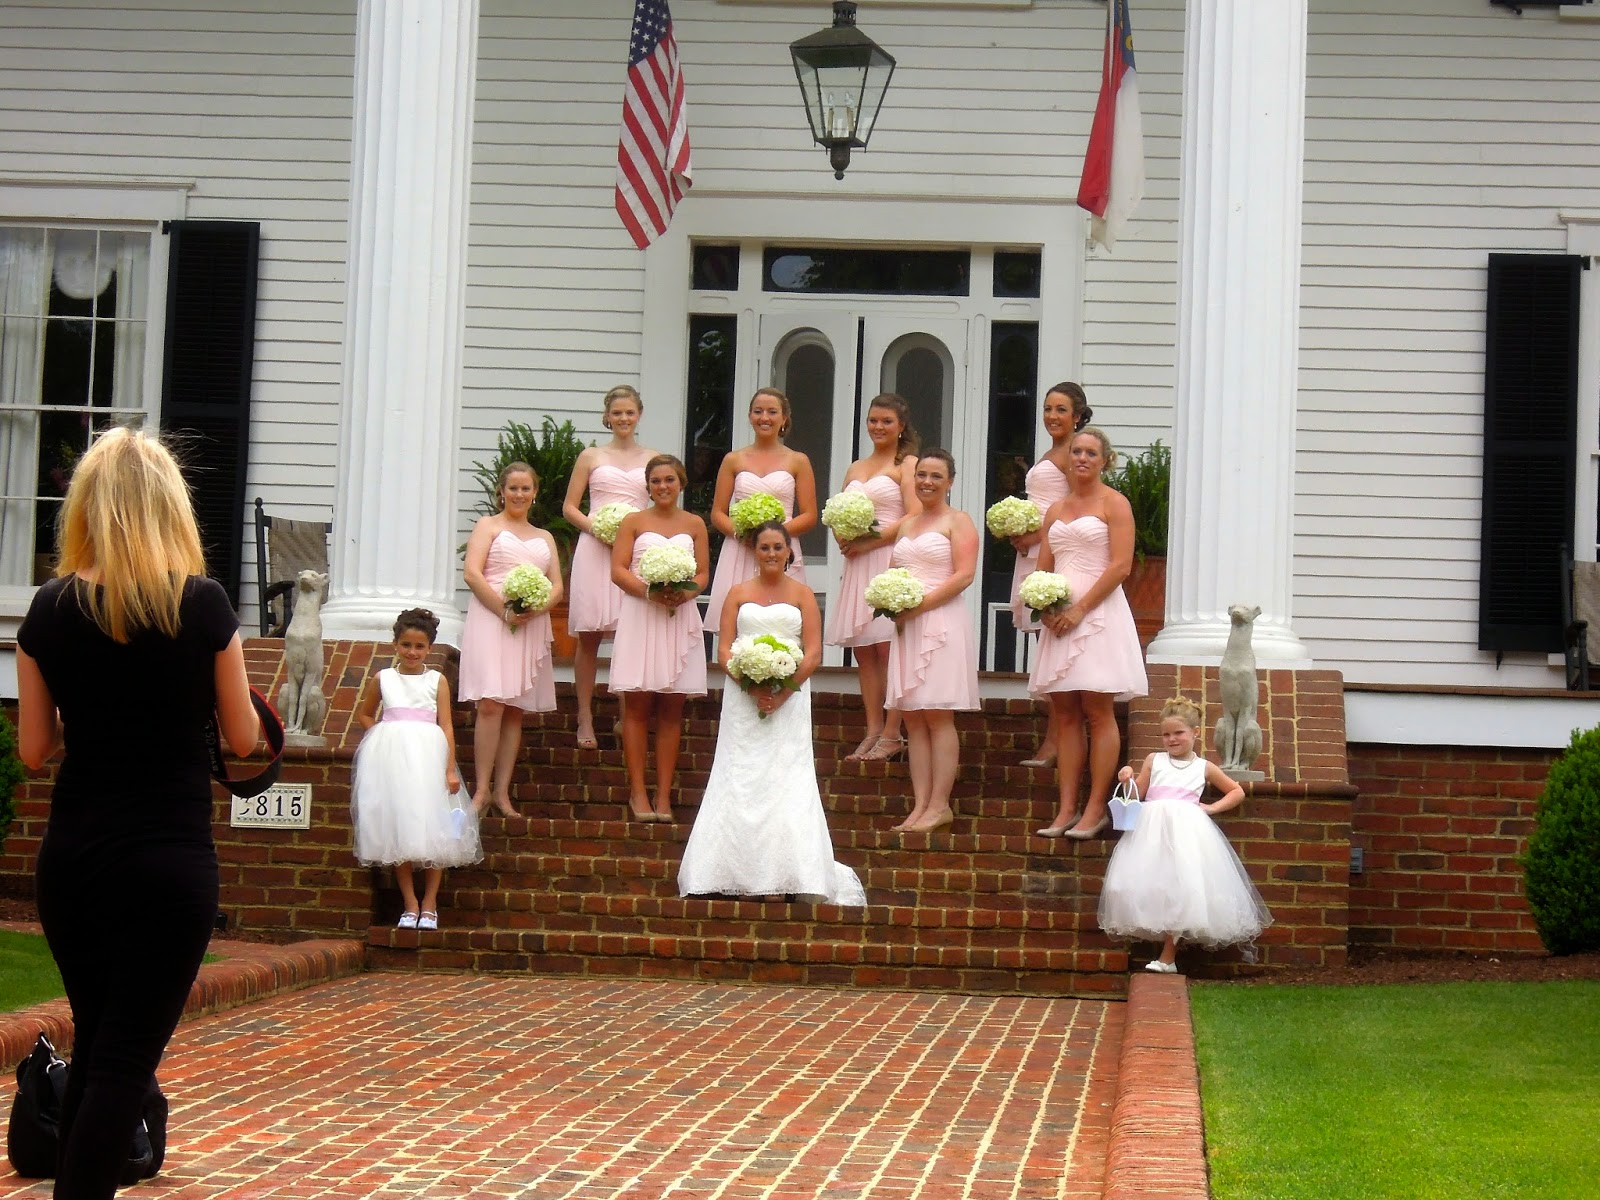 Raleigh Wedding Blog: Gorgeous Wedding at Rose Hill Plantation for ...